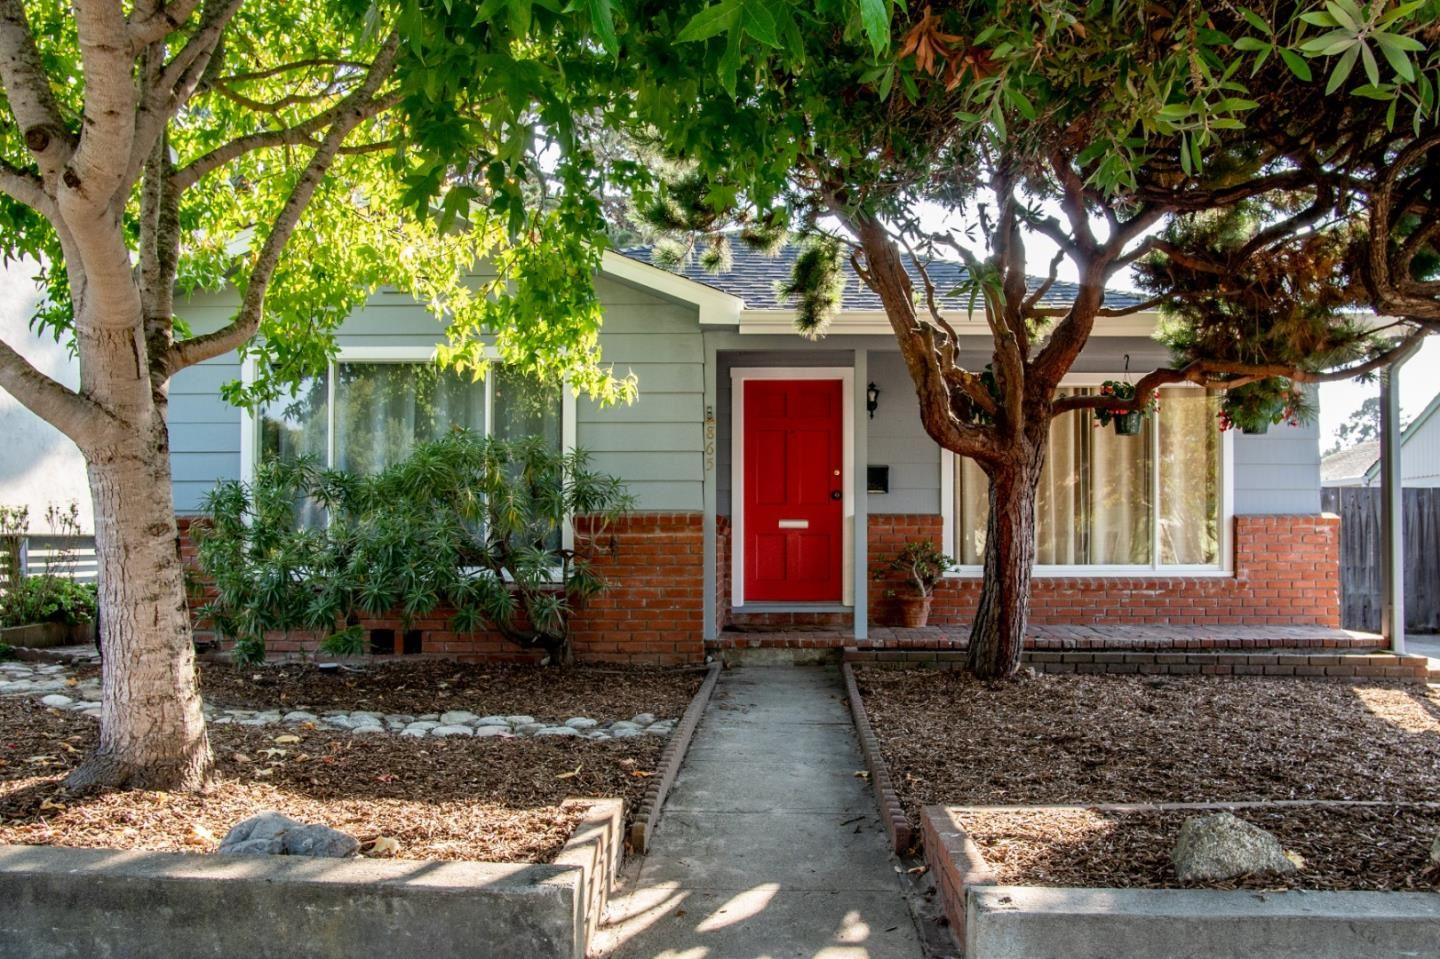 Photo for 865 Lily ST, MONTEREY, CA 93940 (MLS # ML81809838)